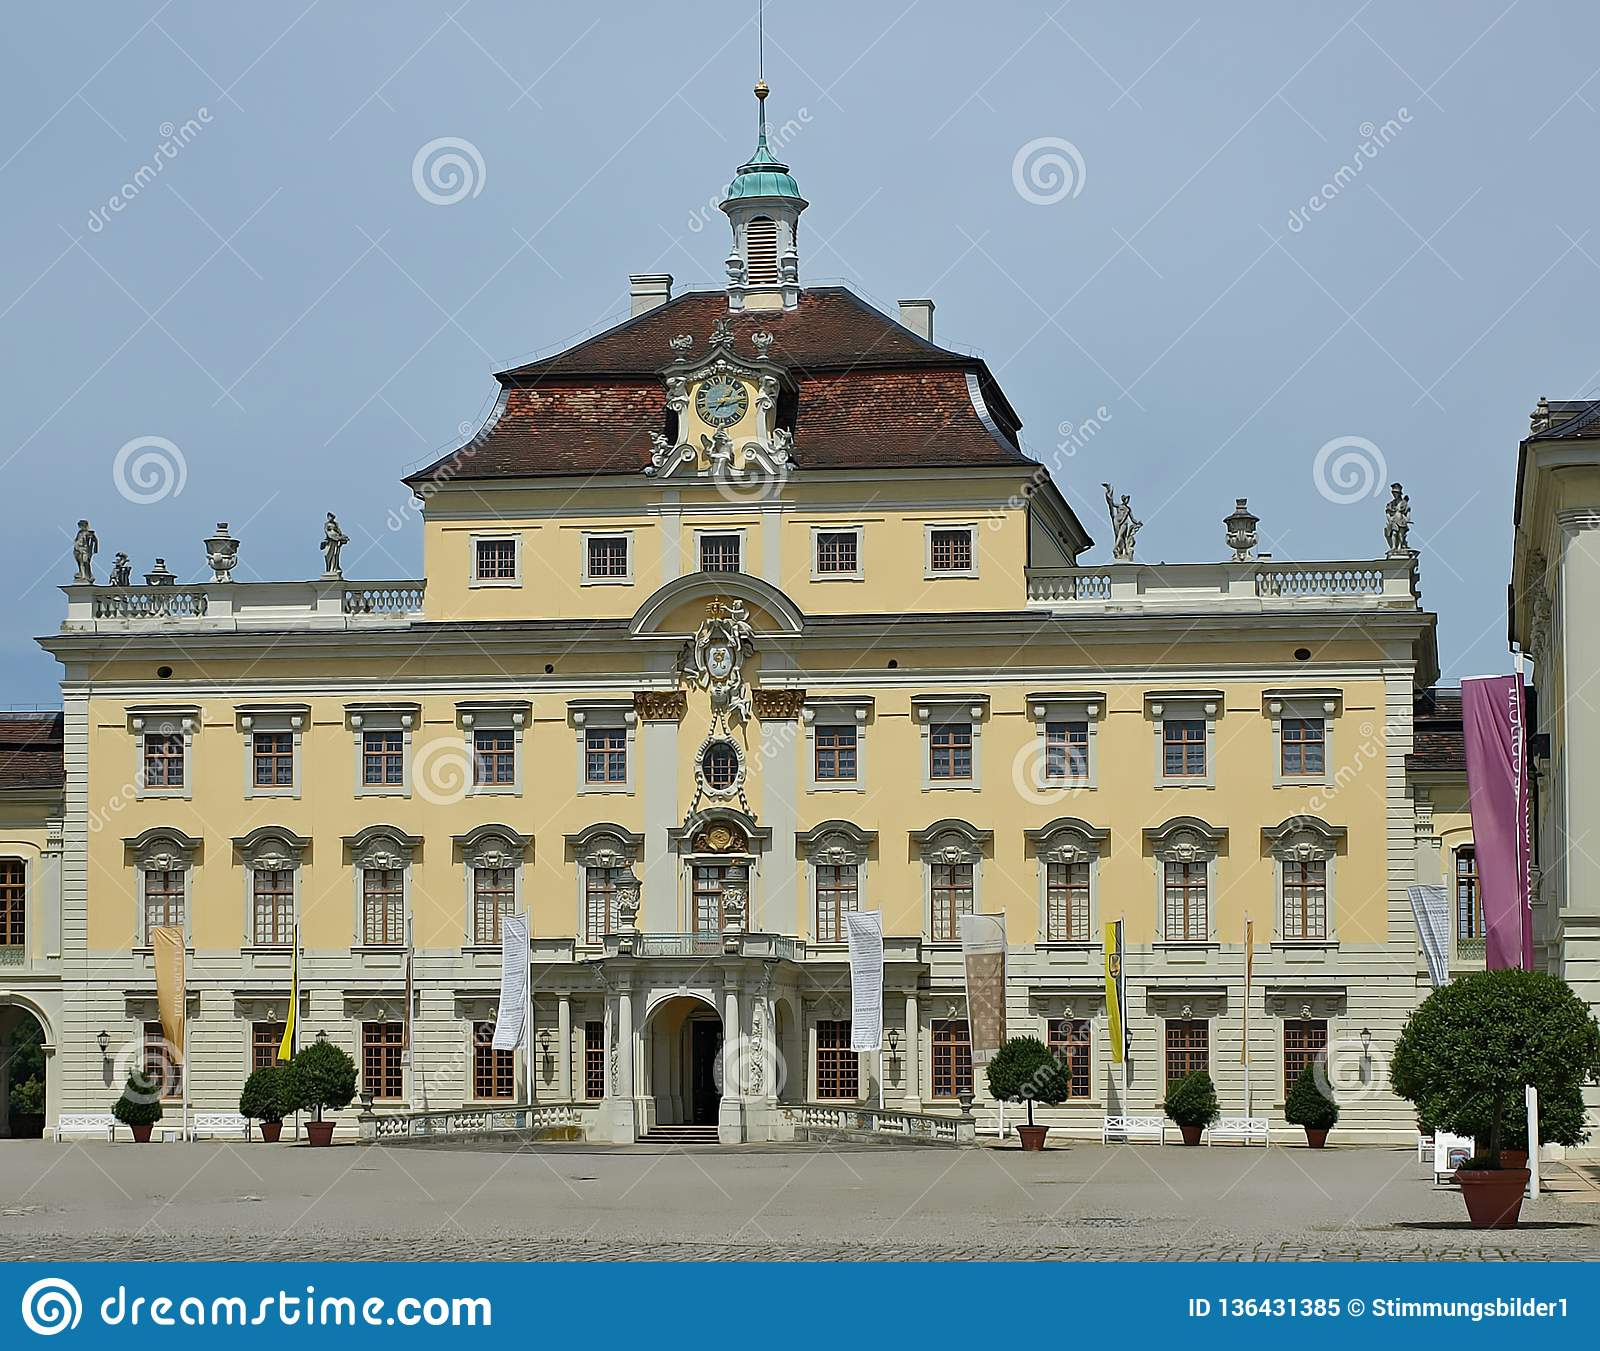 Castle of Schloss Ludwigsburg in Stuttgart in Germany